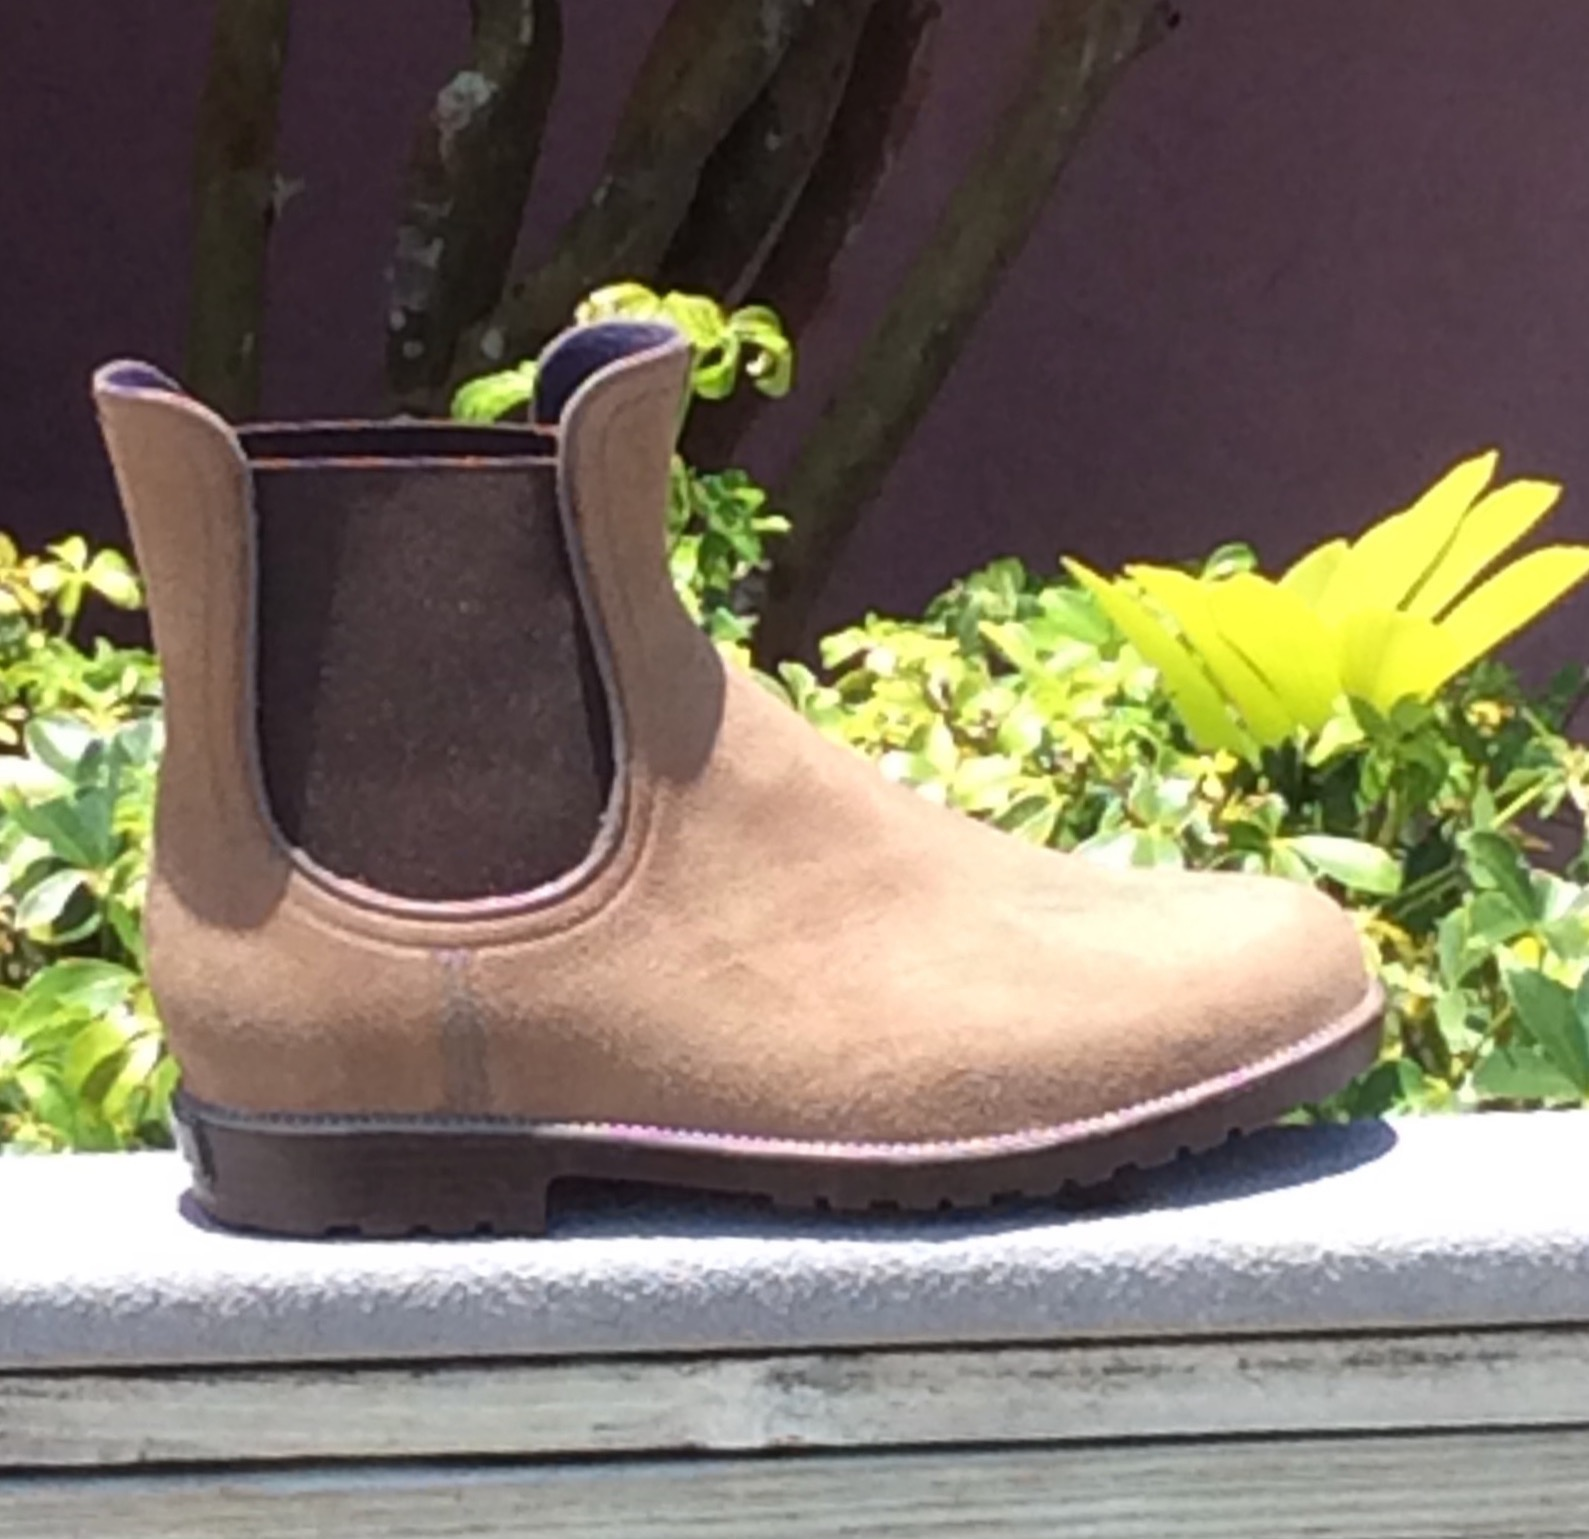 The Sloan chelsea boot